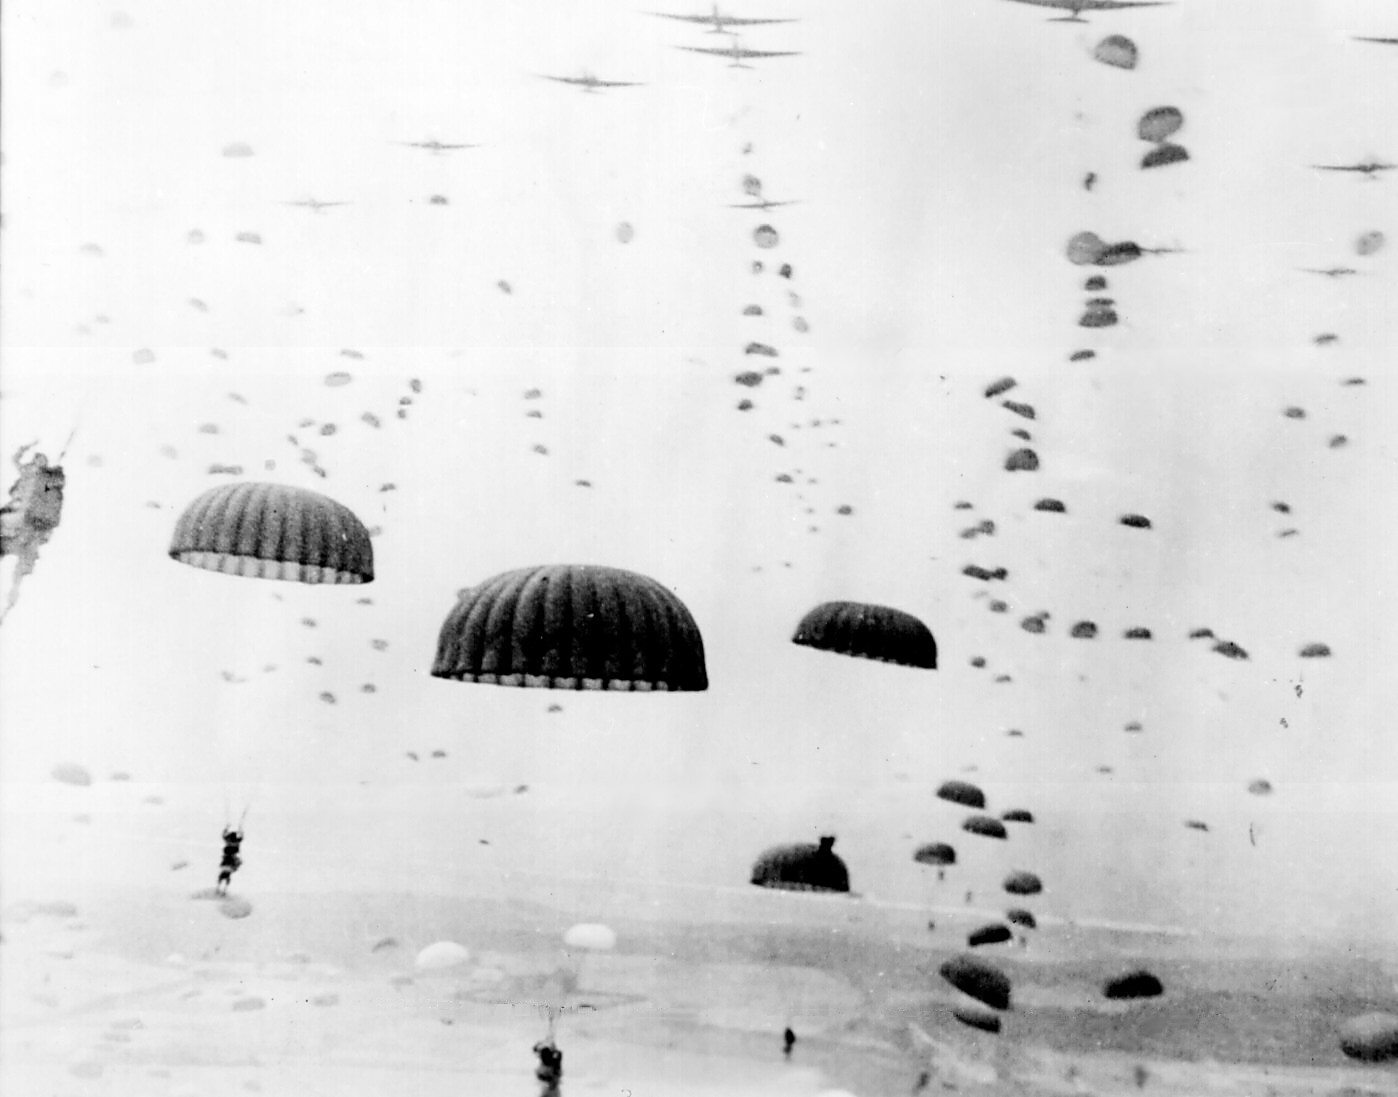 Parachutes open overhead as waves of paratroops land in Holland during operations by the 1st Allied Airborne Army. September 1944